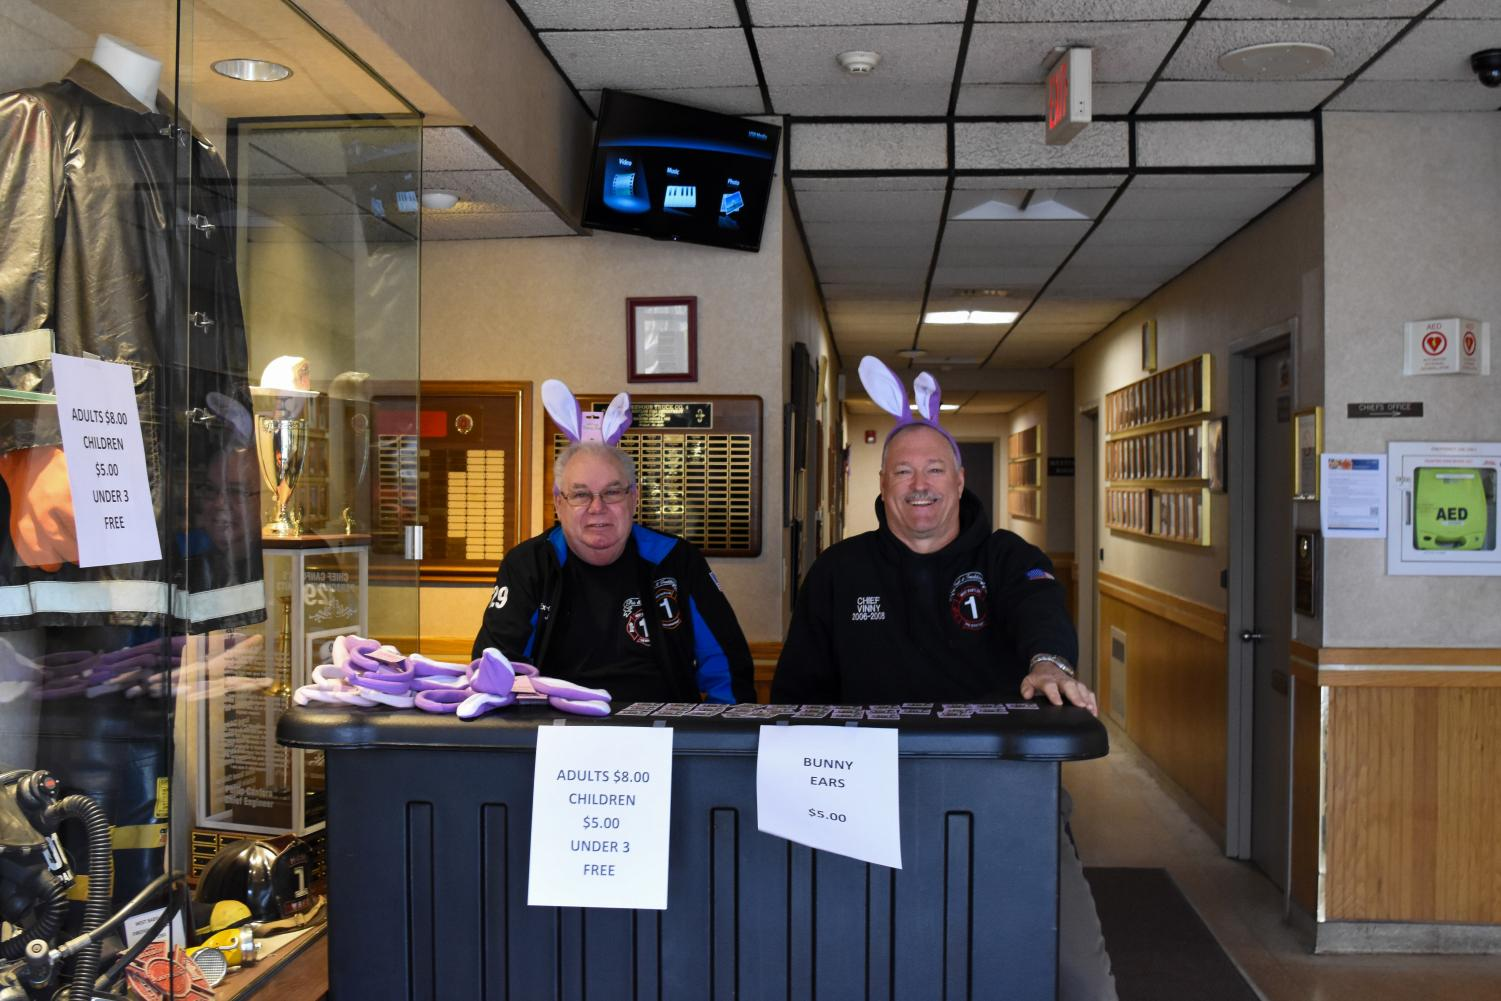 West Babylon Fire Department Annual Breakfast with the Easter Bunny